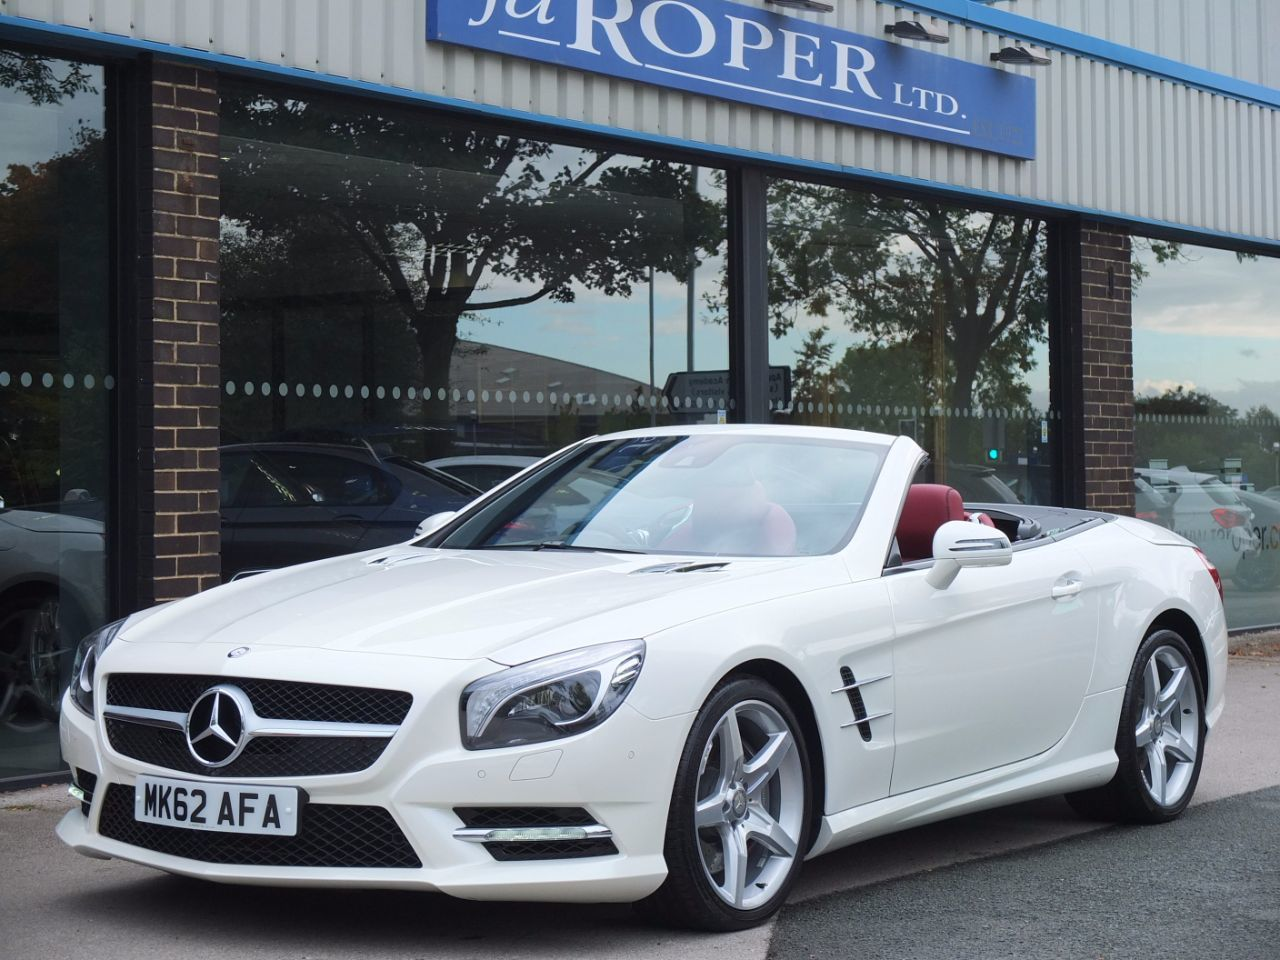 Mercedes-Benz SL Class 3.5 SL 350 AMG Sport Auto Convertible Petrol Diamond White MetallicMercedes-Benz SL Class 3.5 SL 350 AMG Sport Auto Convertible Petrol Diamond White Metallic at fa Roper Ltd Bradford